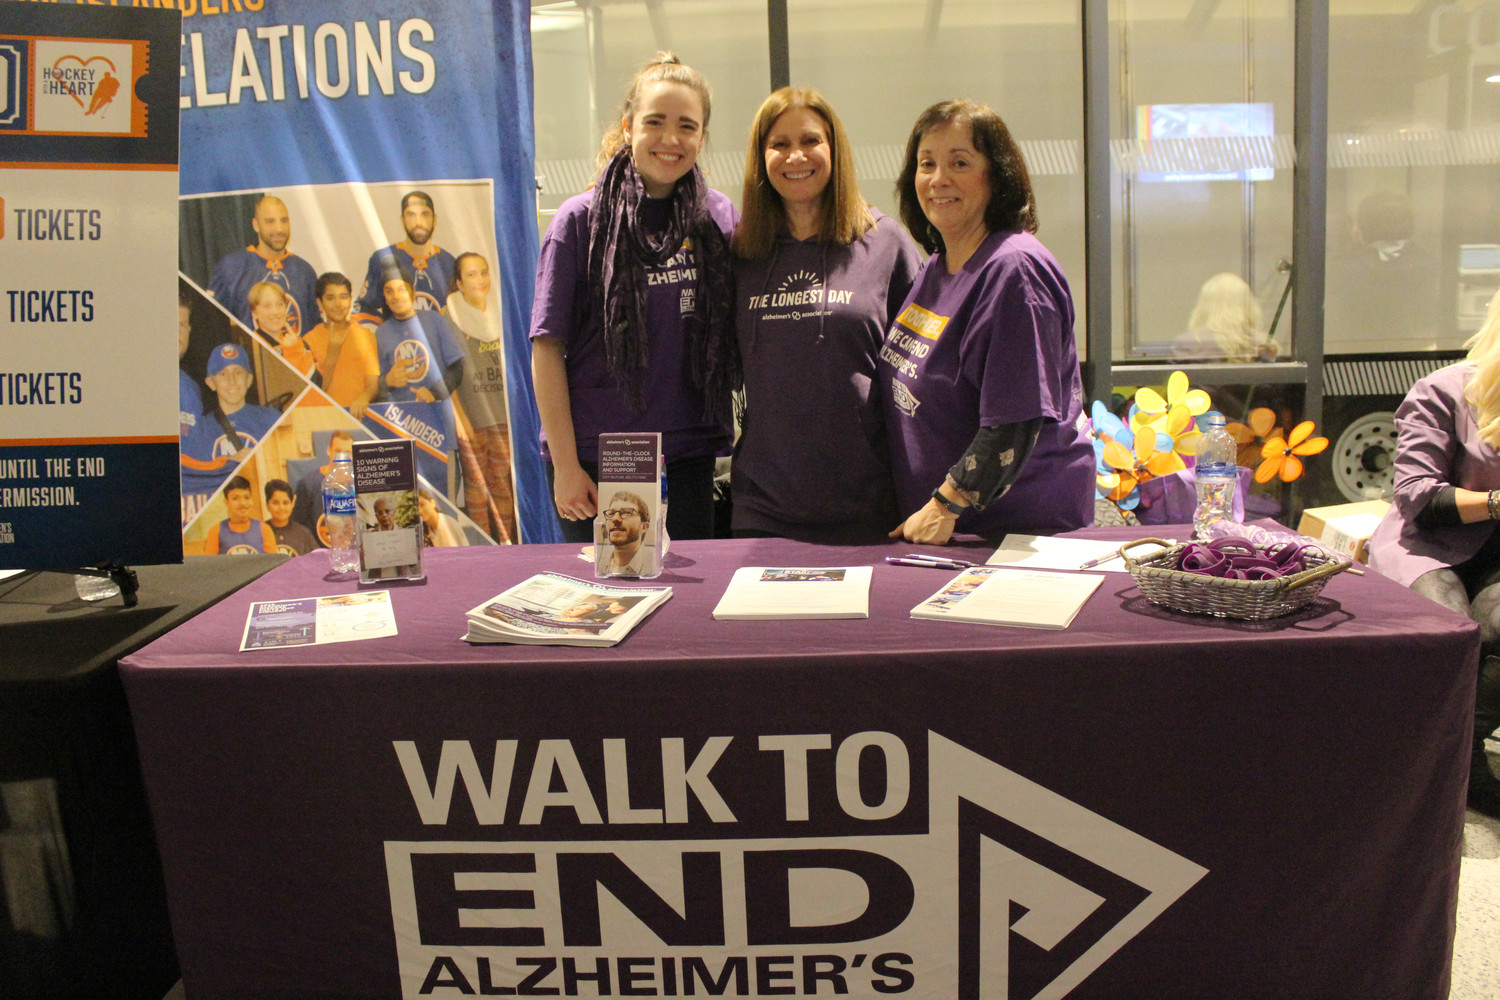 Krisitin Murphy, Judy Wichter and Karen Lambrinon volunteered to promote the Alzheimer's Association and sell raffle tickets.